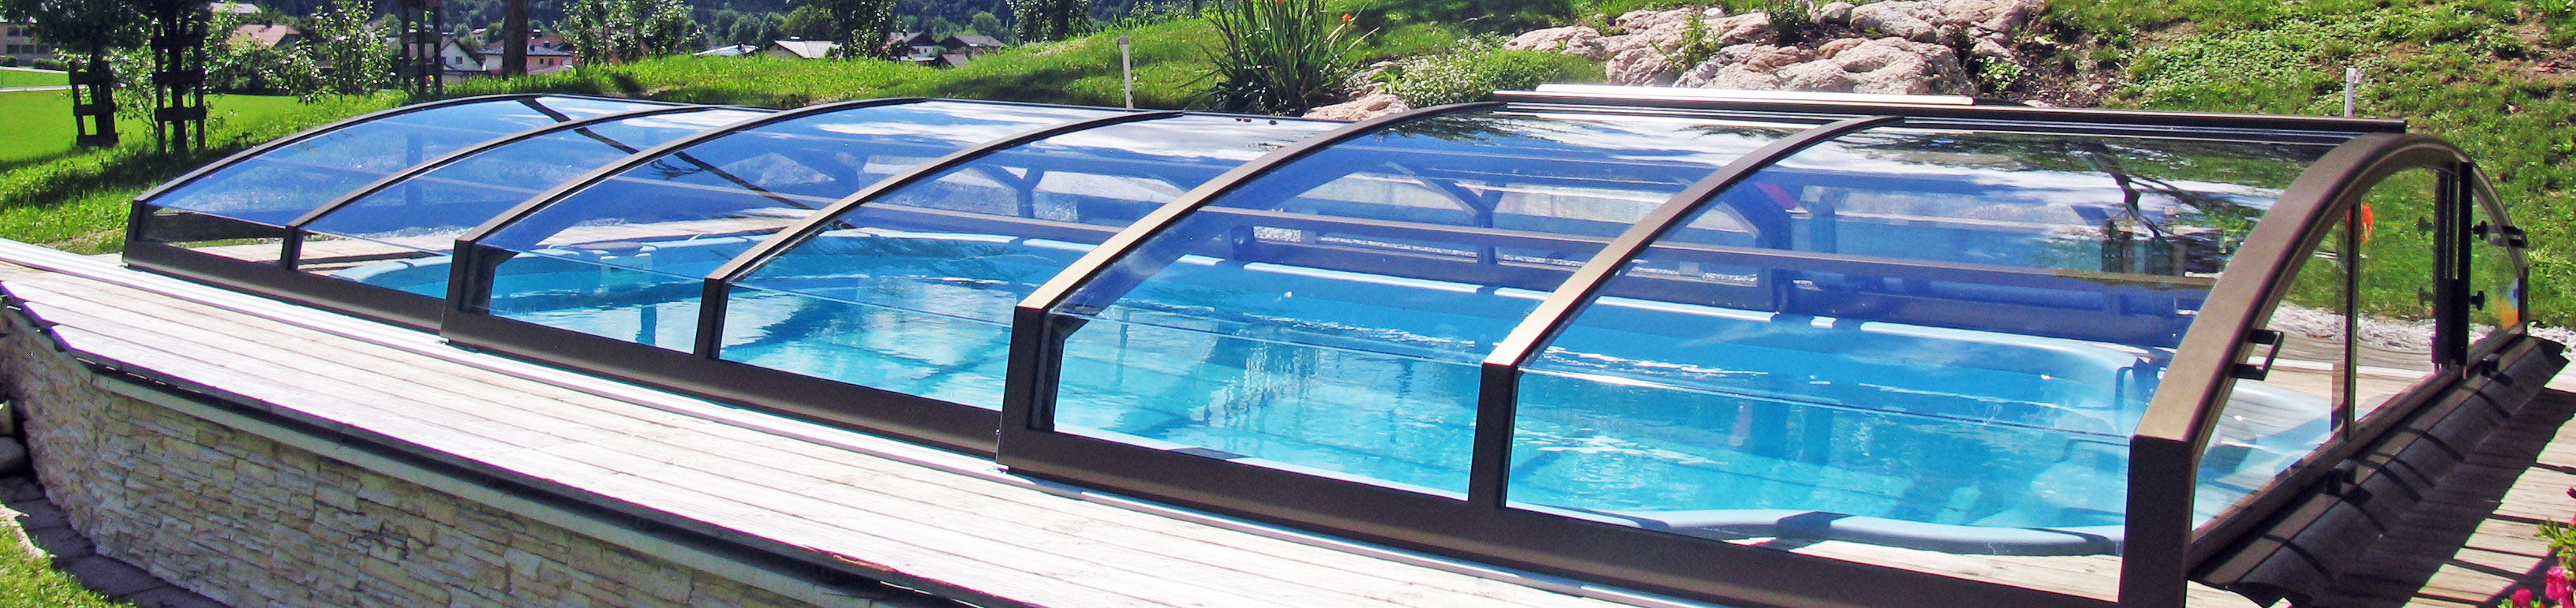 Closed retractable swimming pool enclosure imperia sunrooms Retractable swimming pool enclosures